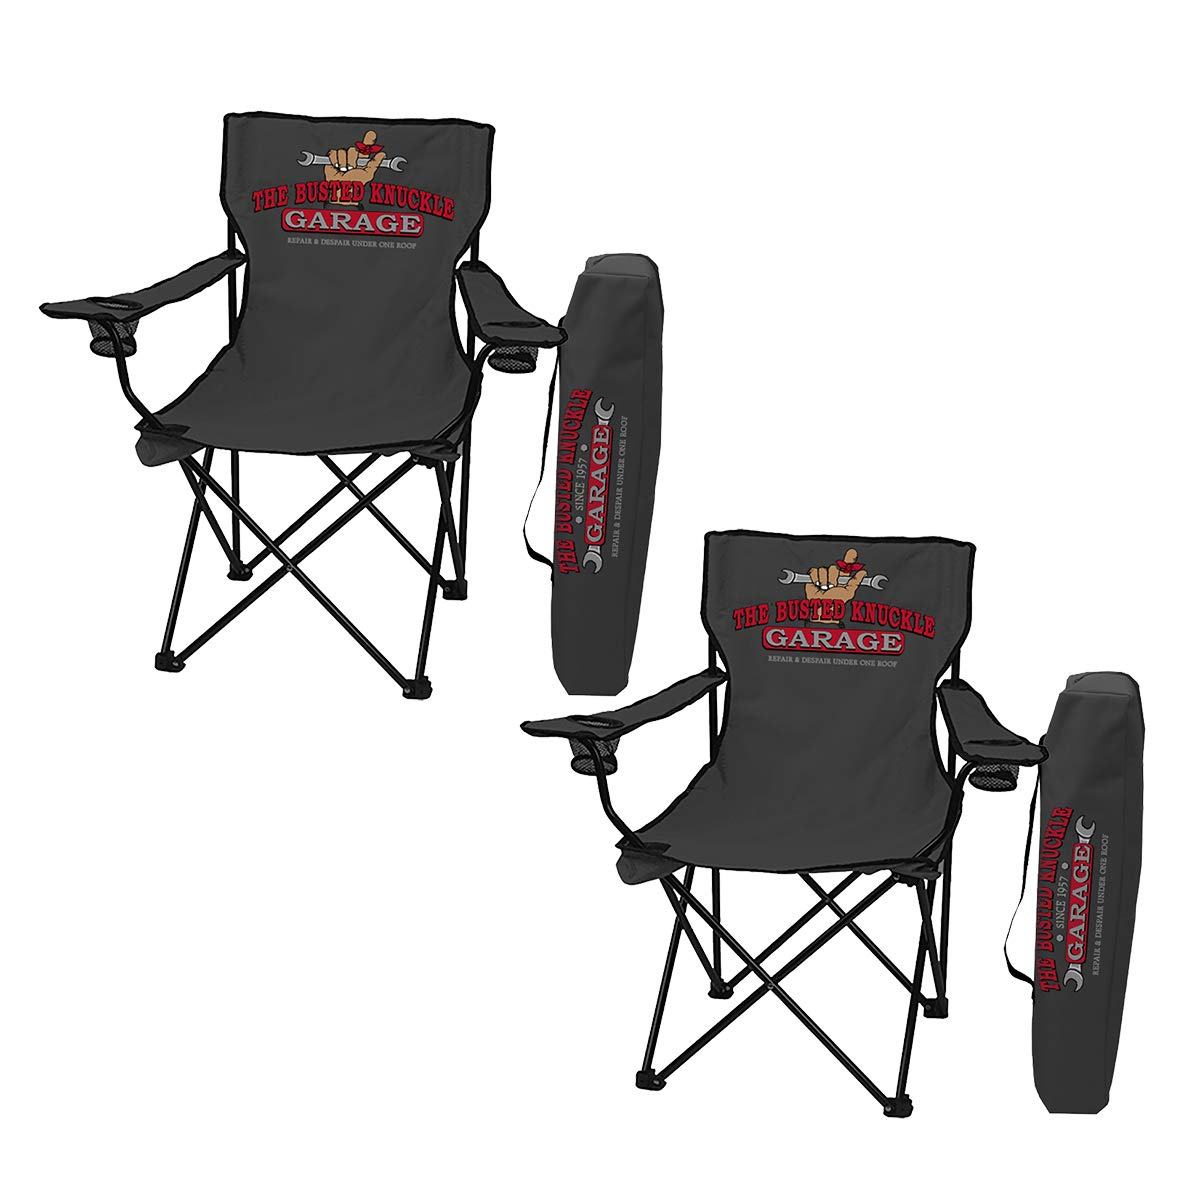 Strange Amazon Com Busted Knuckle Garage Set Of 2 Folding Chairs Cjindustries Chair Design For Home Cjindustriesco